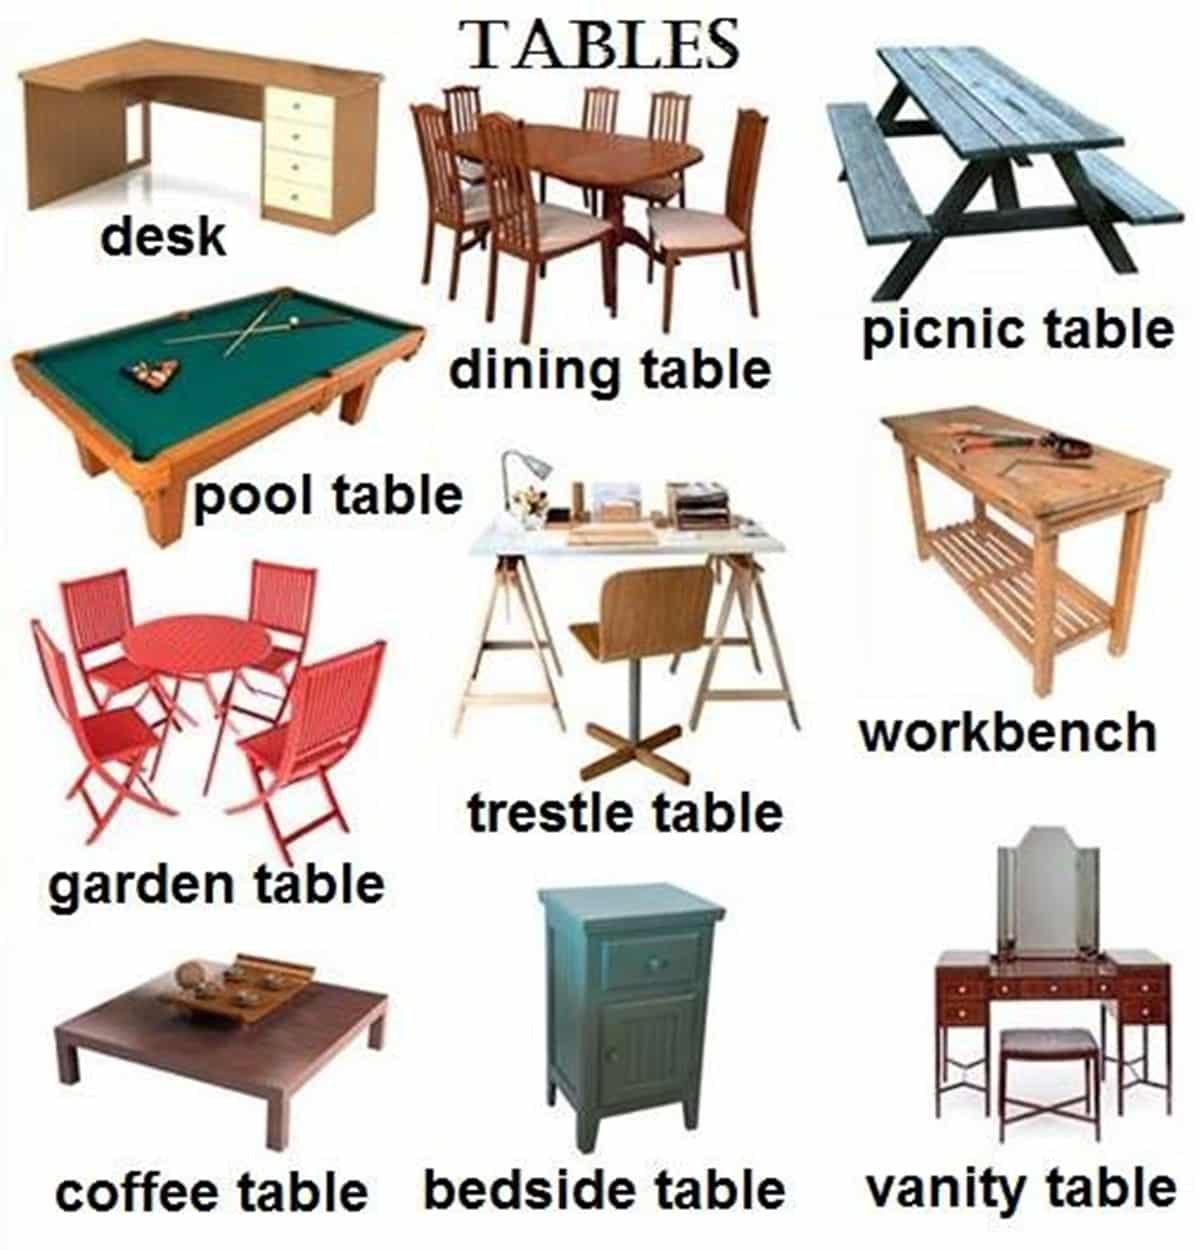 Furniture Vocabulary 250 Items Illustrated